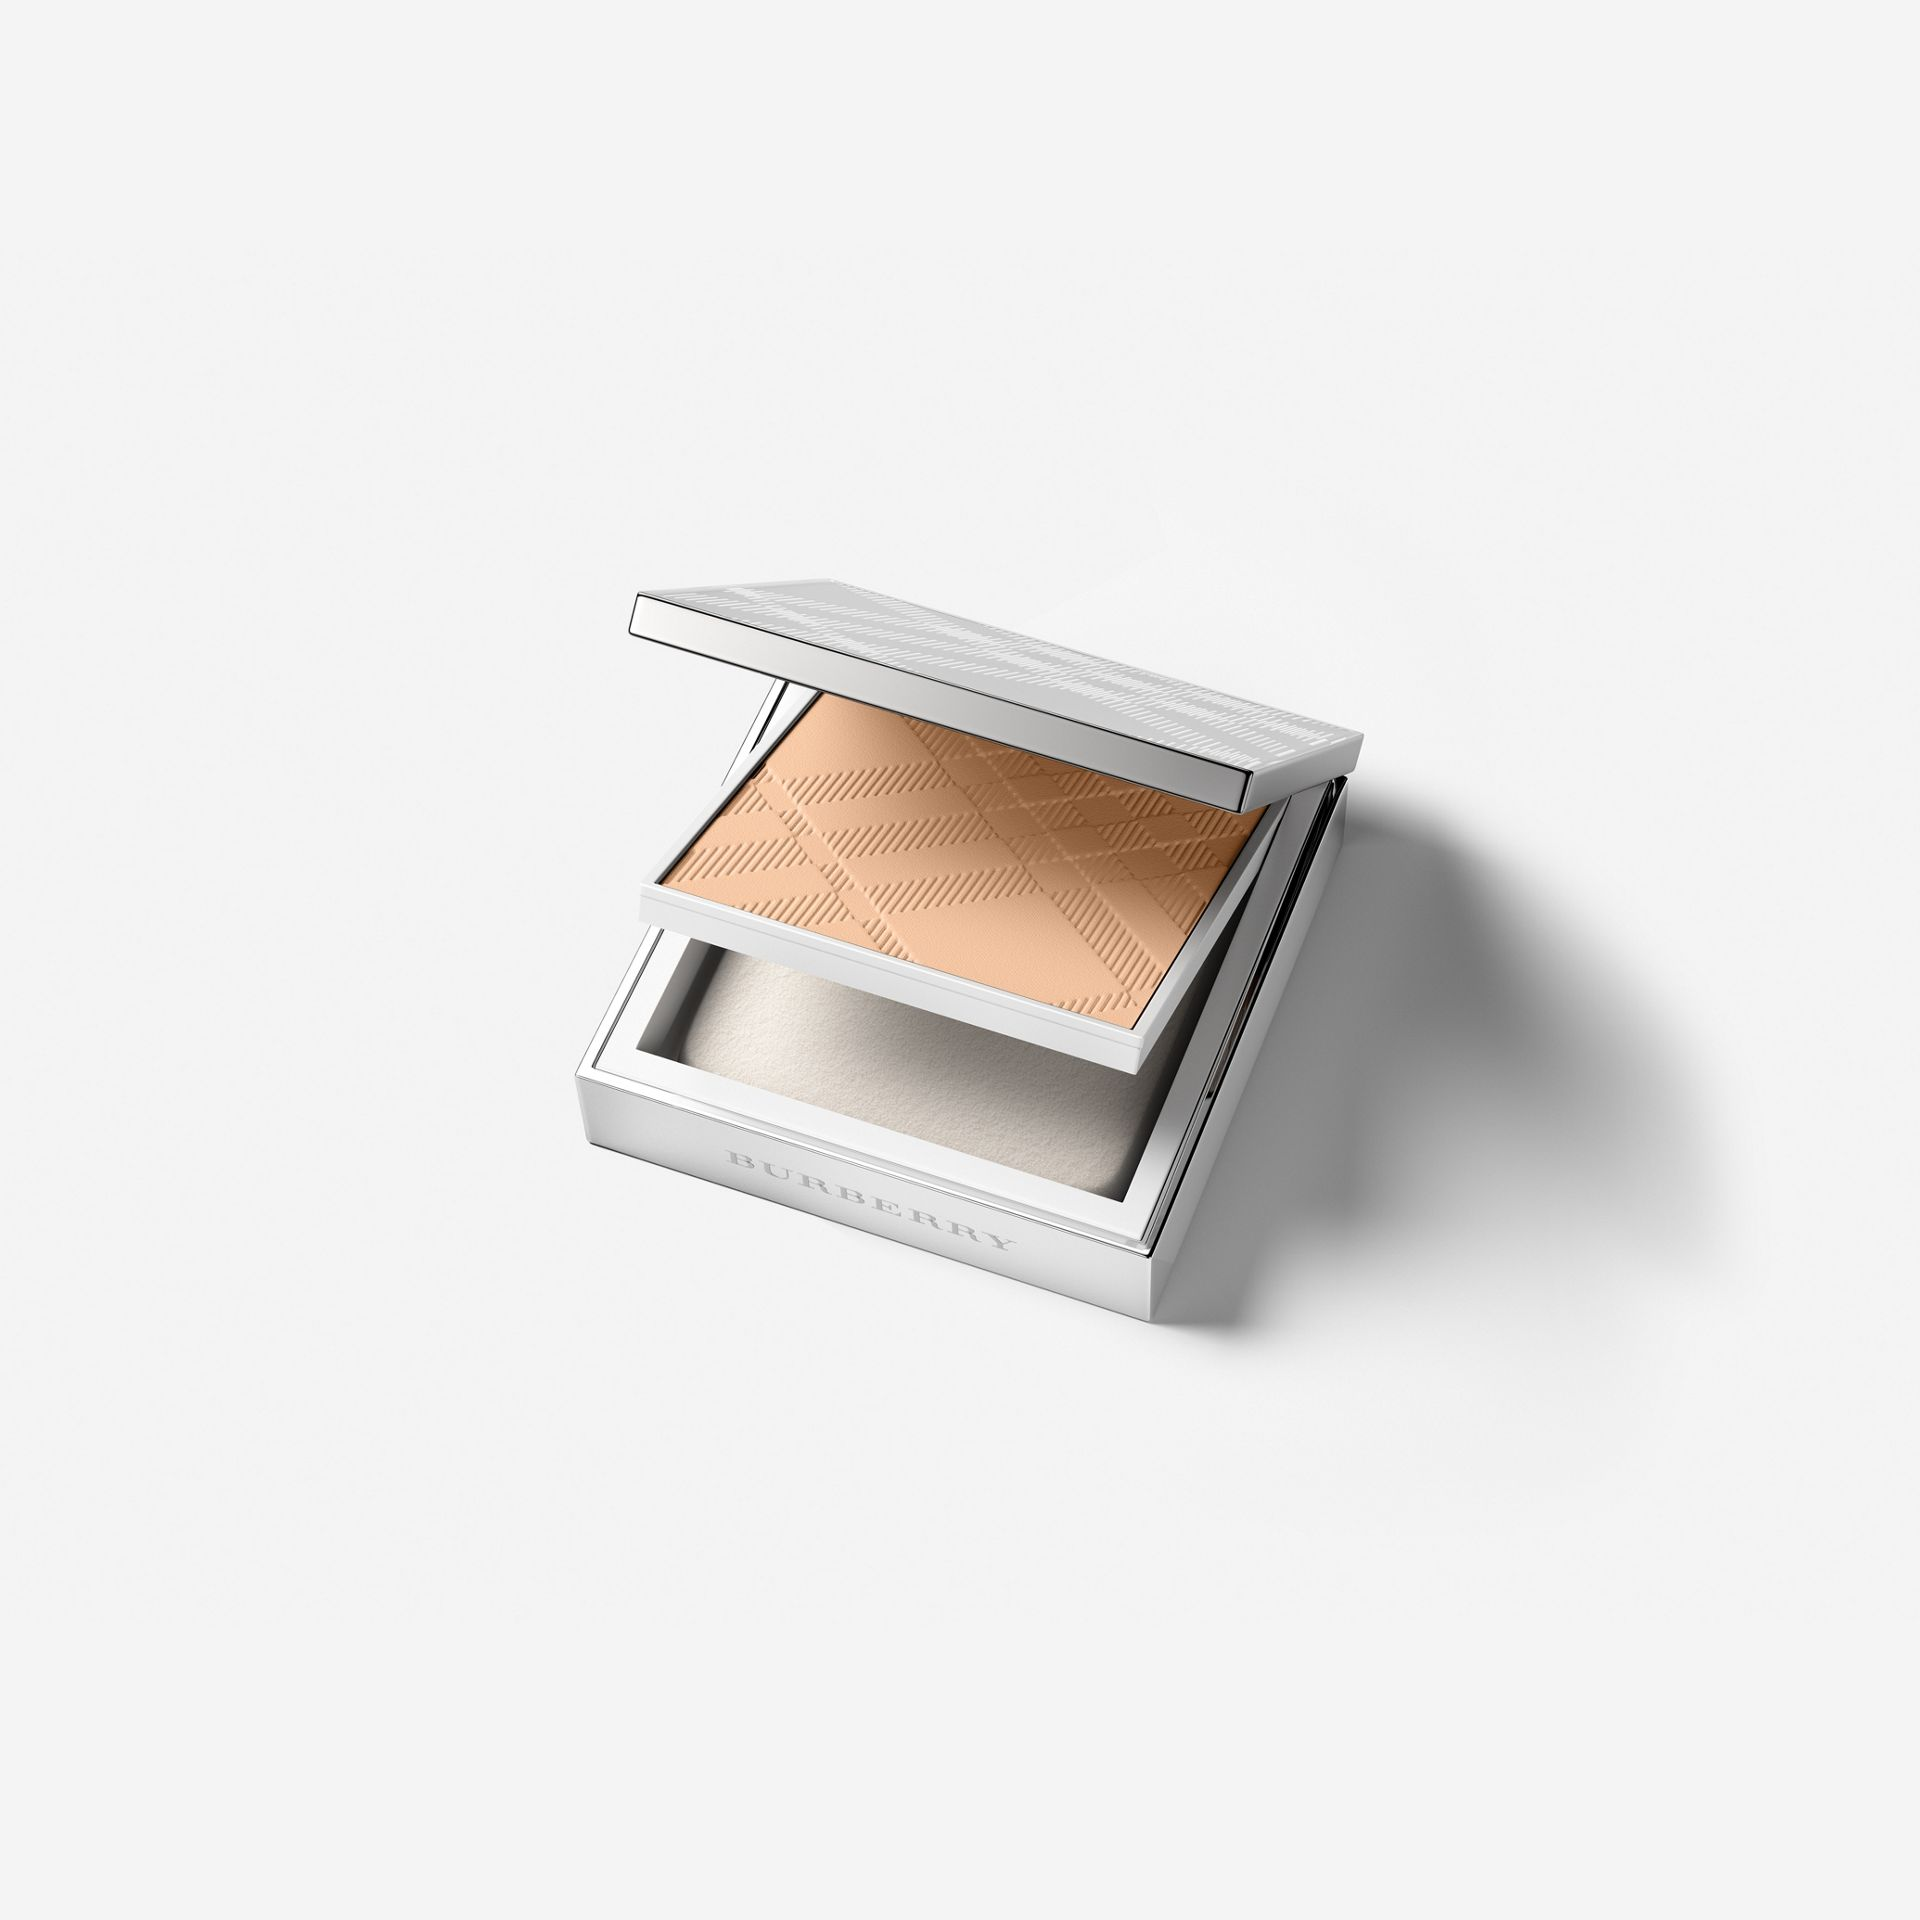 Bright Glow Compact SPF 25 PA +++ – Ochre Nude No.12 - gallery image 1